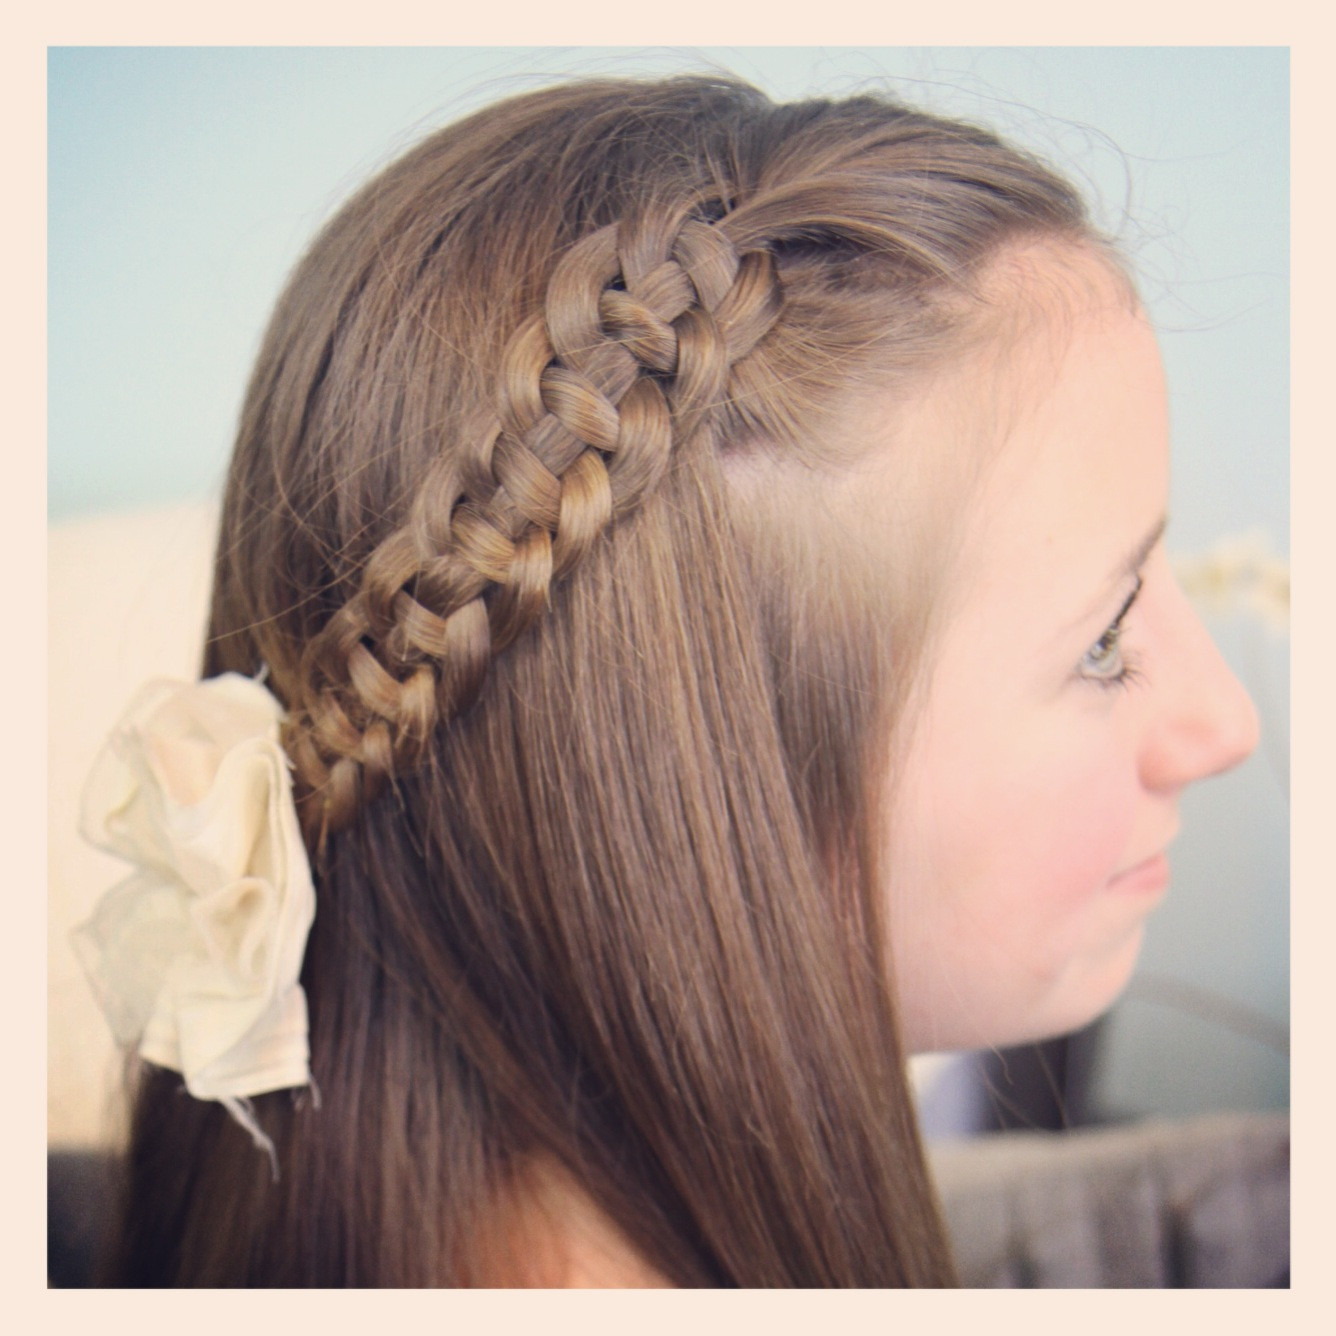 Best ideas about Cute Girls Haircuts . Save or Pin 4 Strand Slide Up Braid Pullback Hairstyles Now.